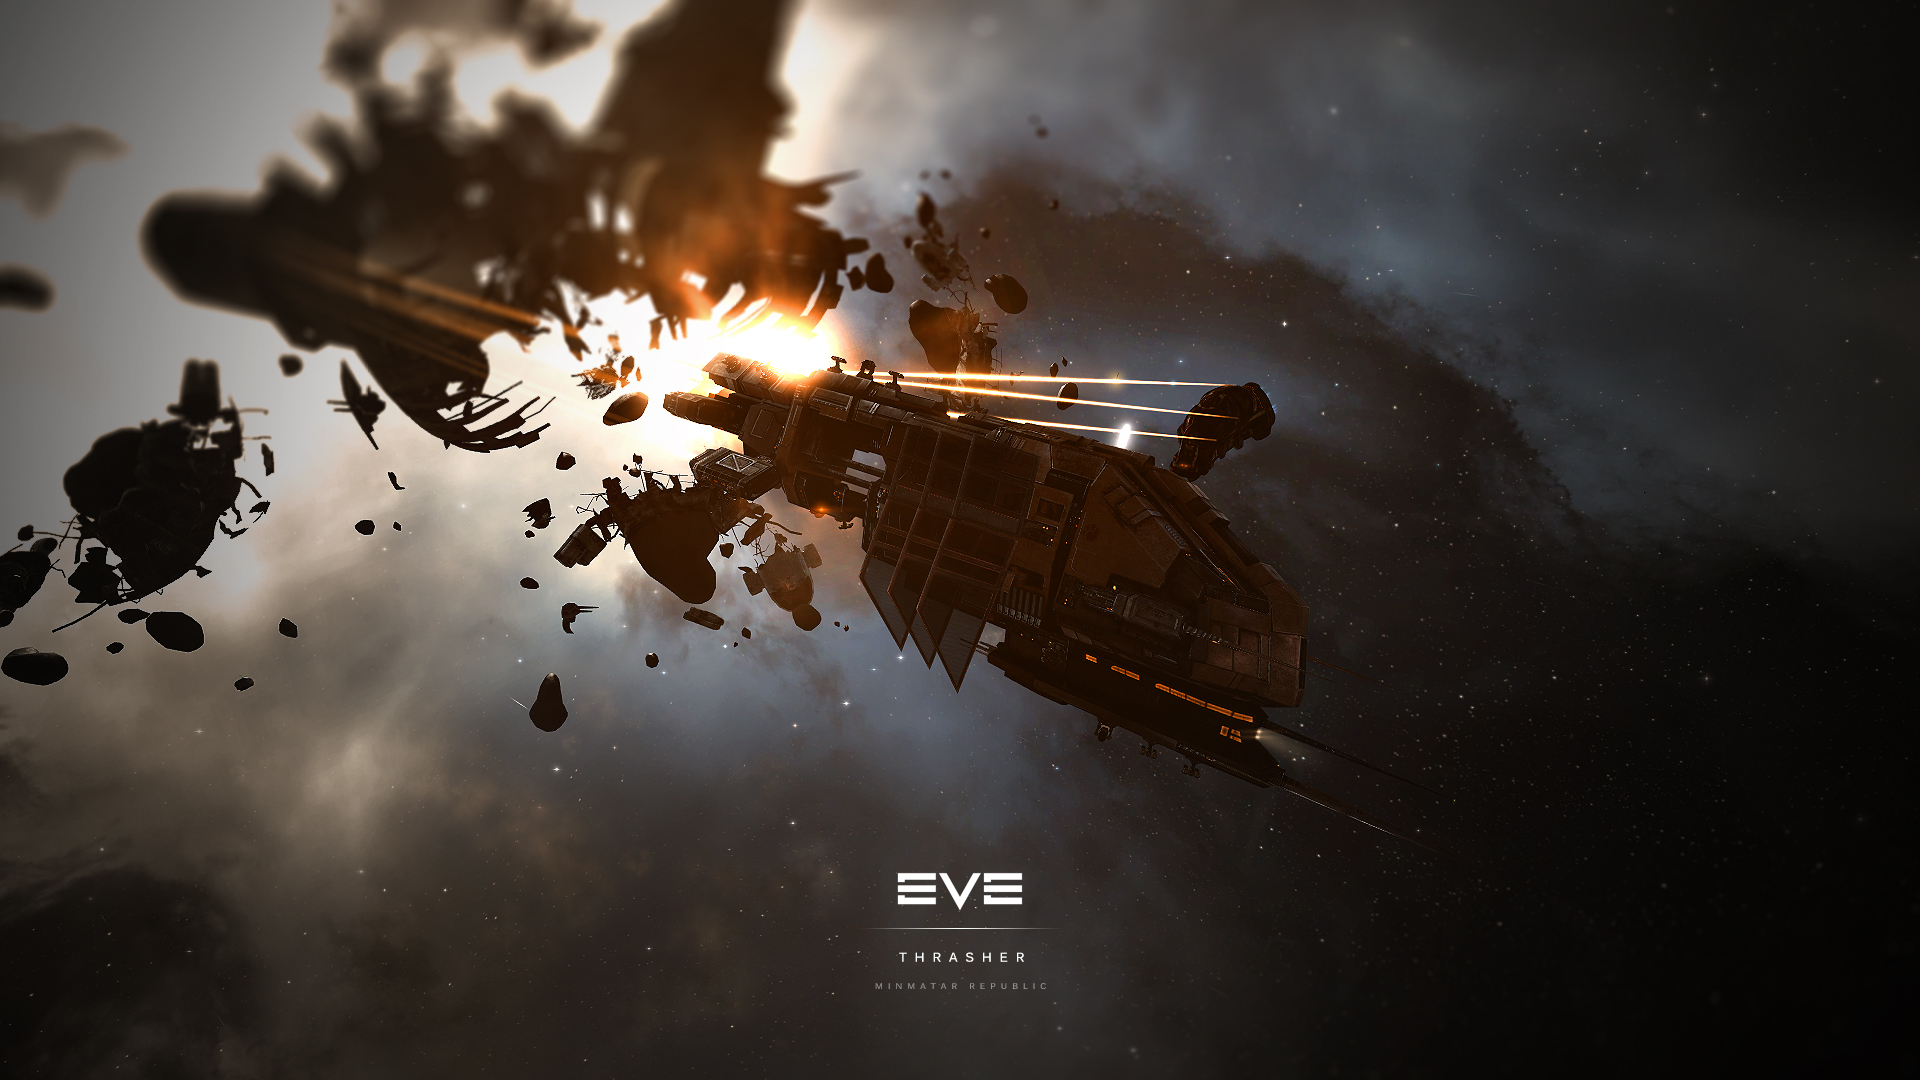 Animated Wallpapers Hd 1080p Eve Online Wallpapers Hd Pixelstalk Net